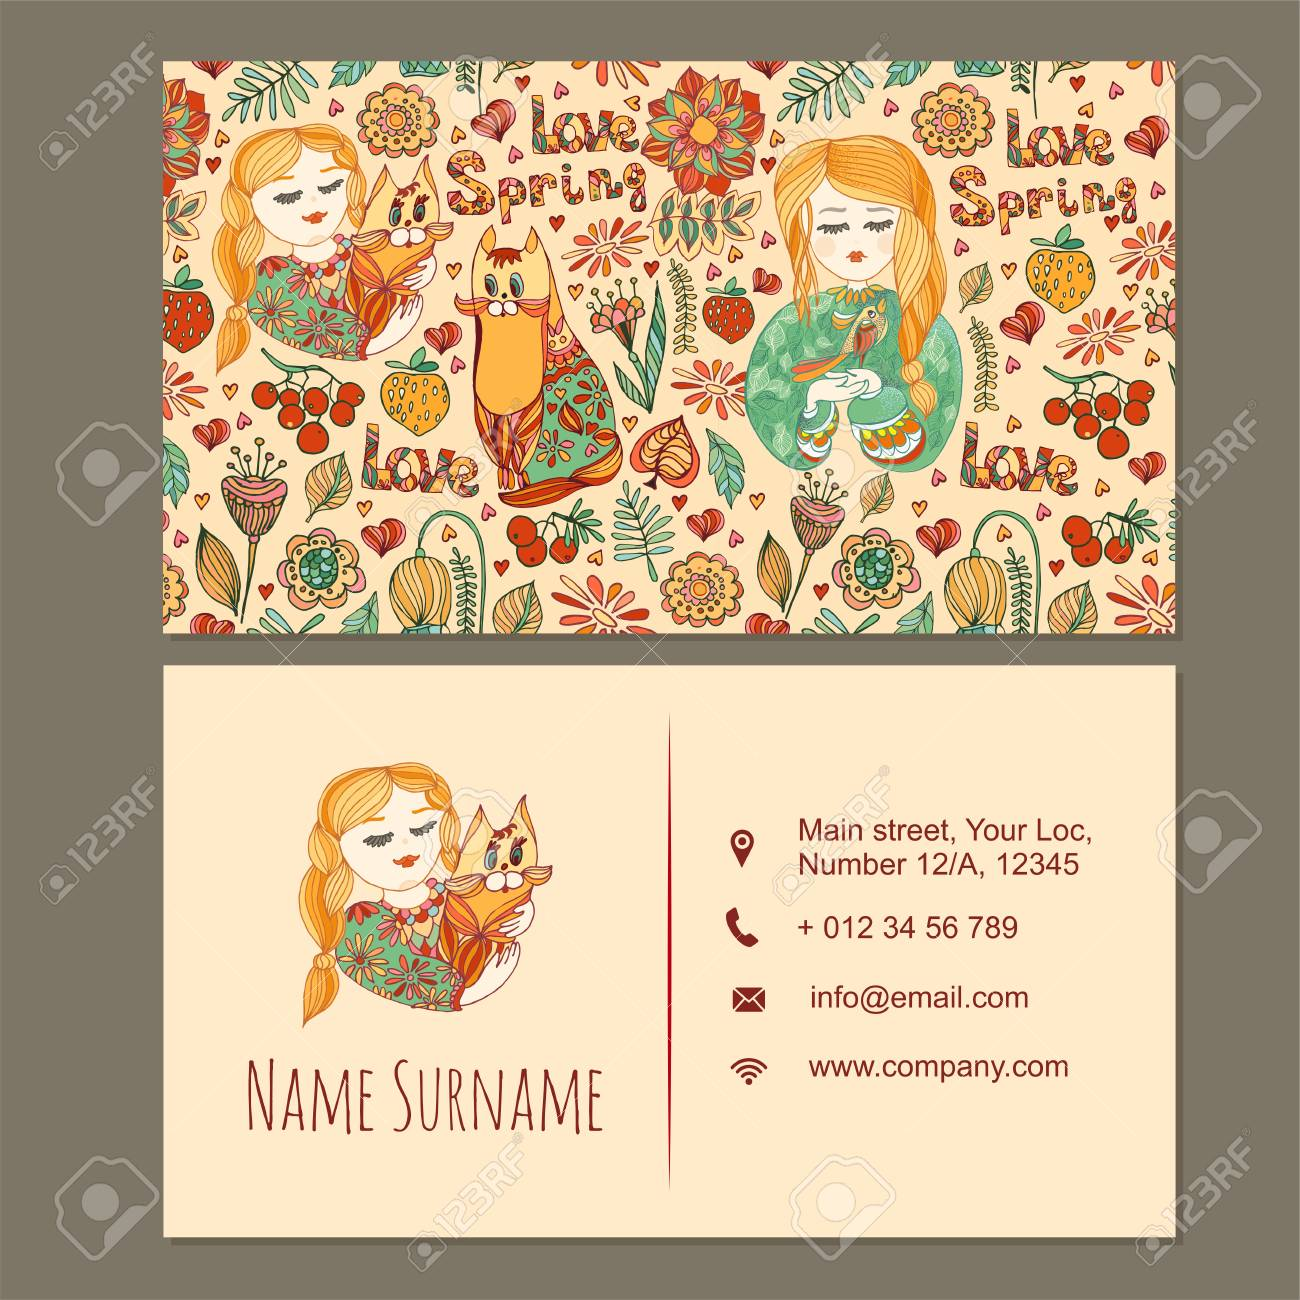 Visiting Card, Business Card Template With Cute Hand Drawn Floral ...